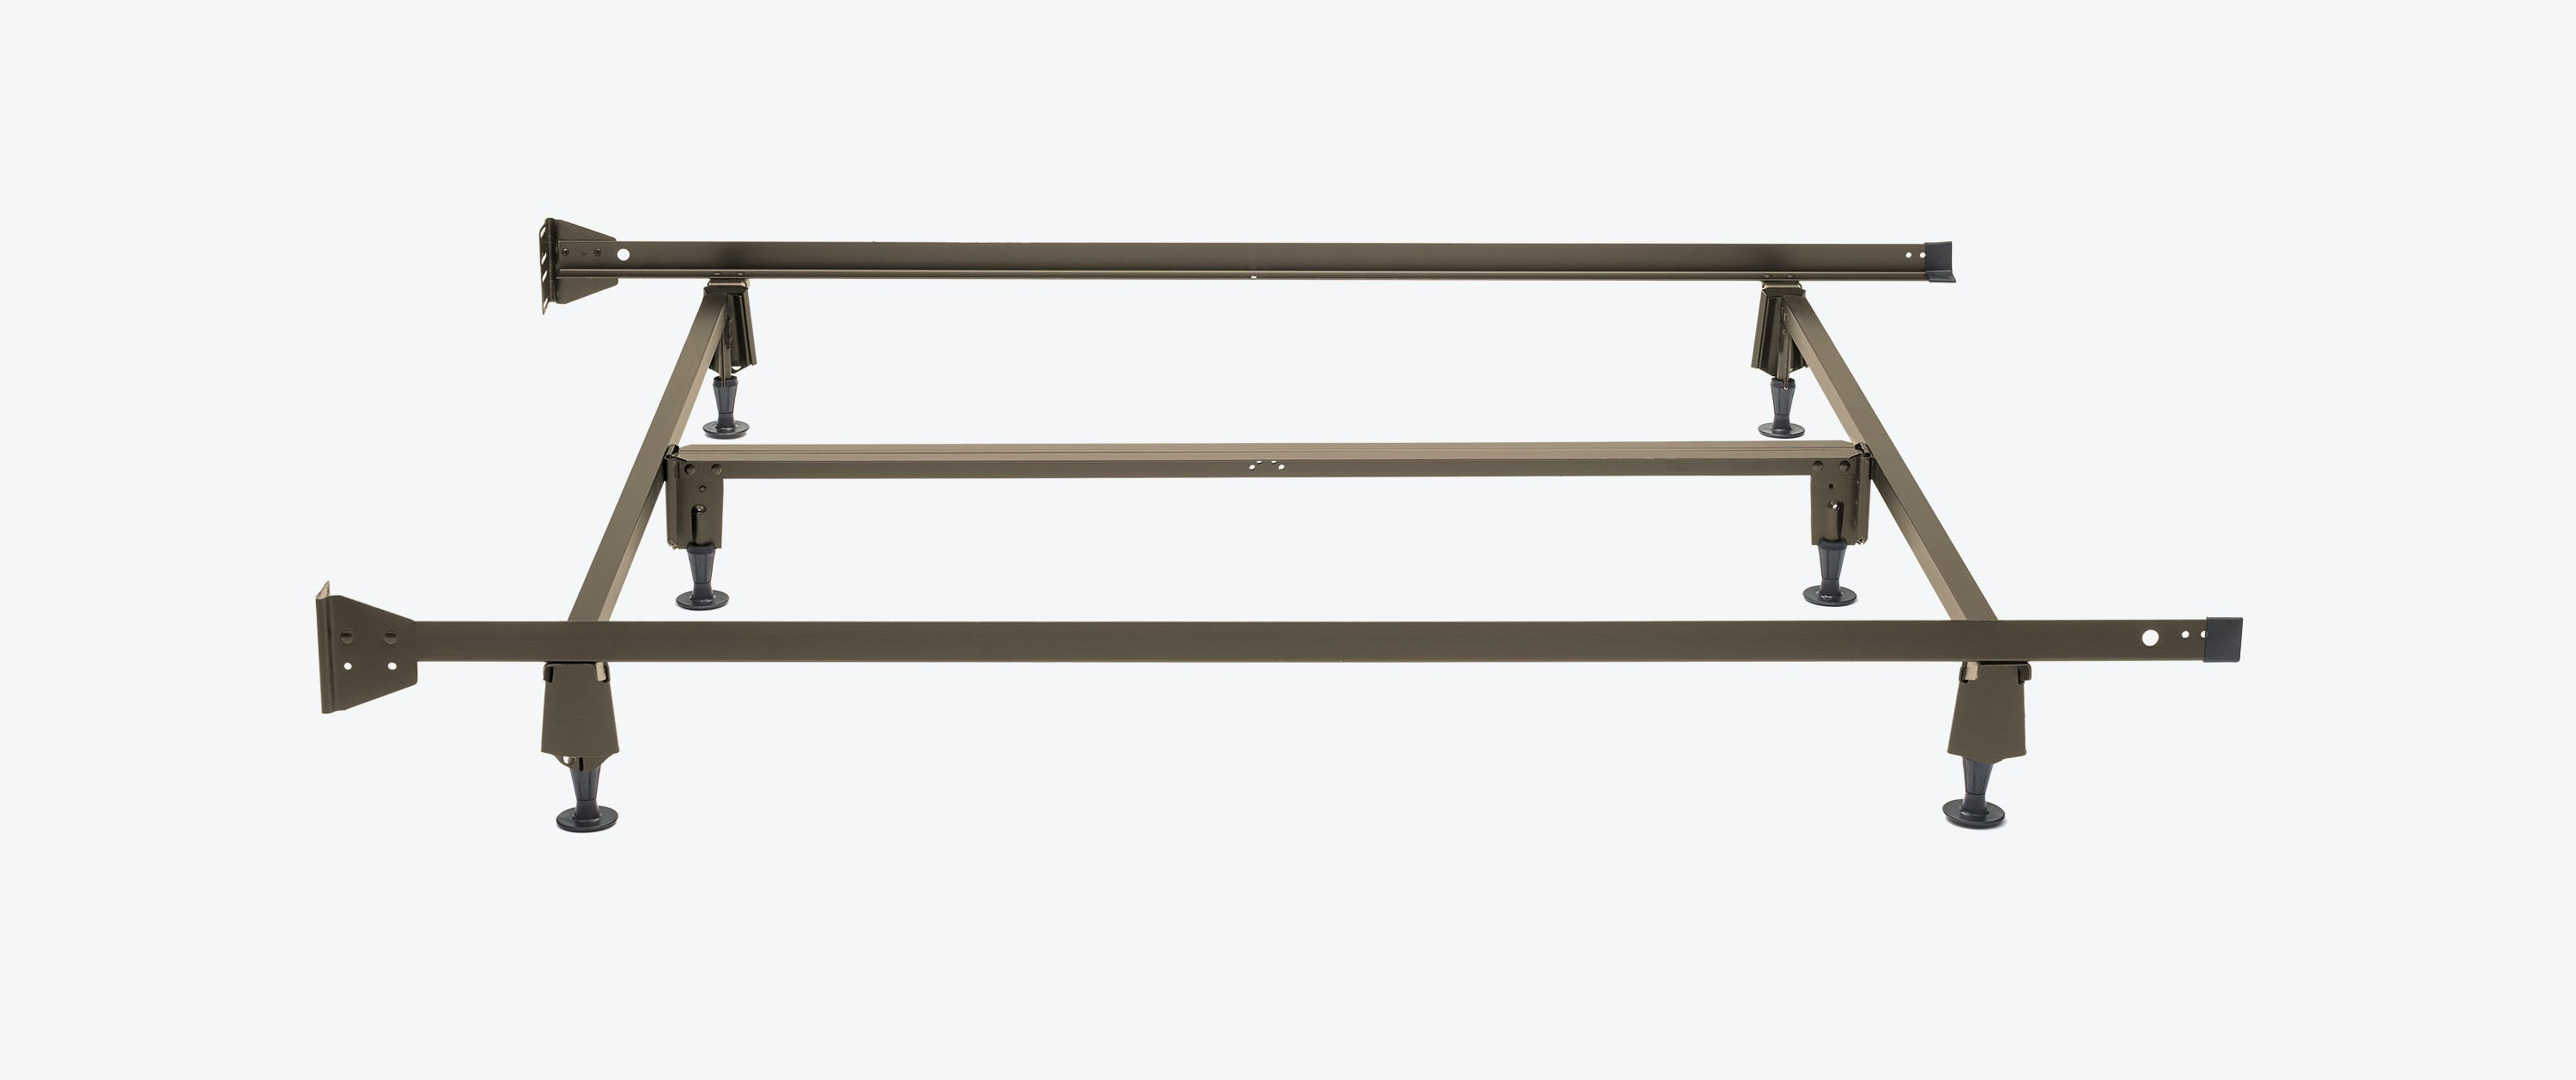 Metal Bed Frame (All Sizes: Twin to California King) | Casper®